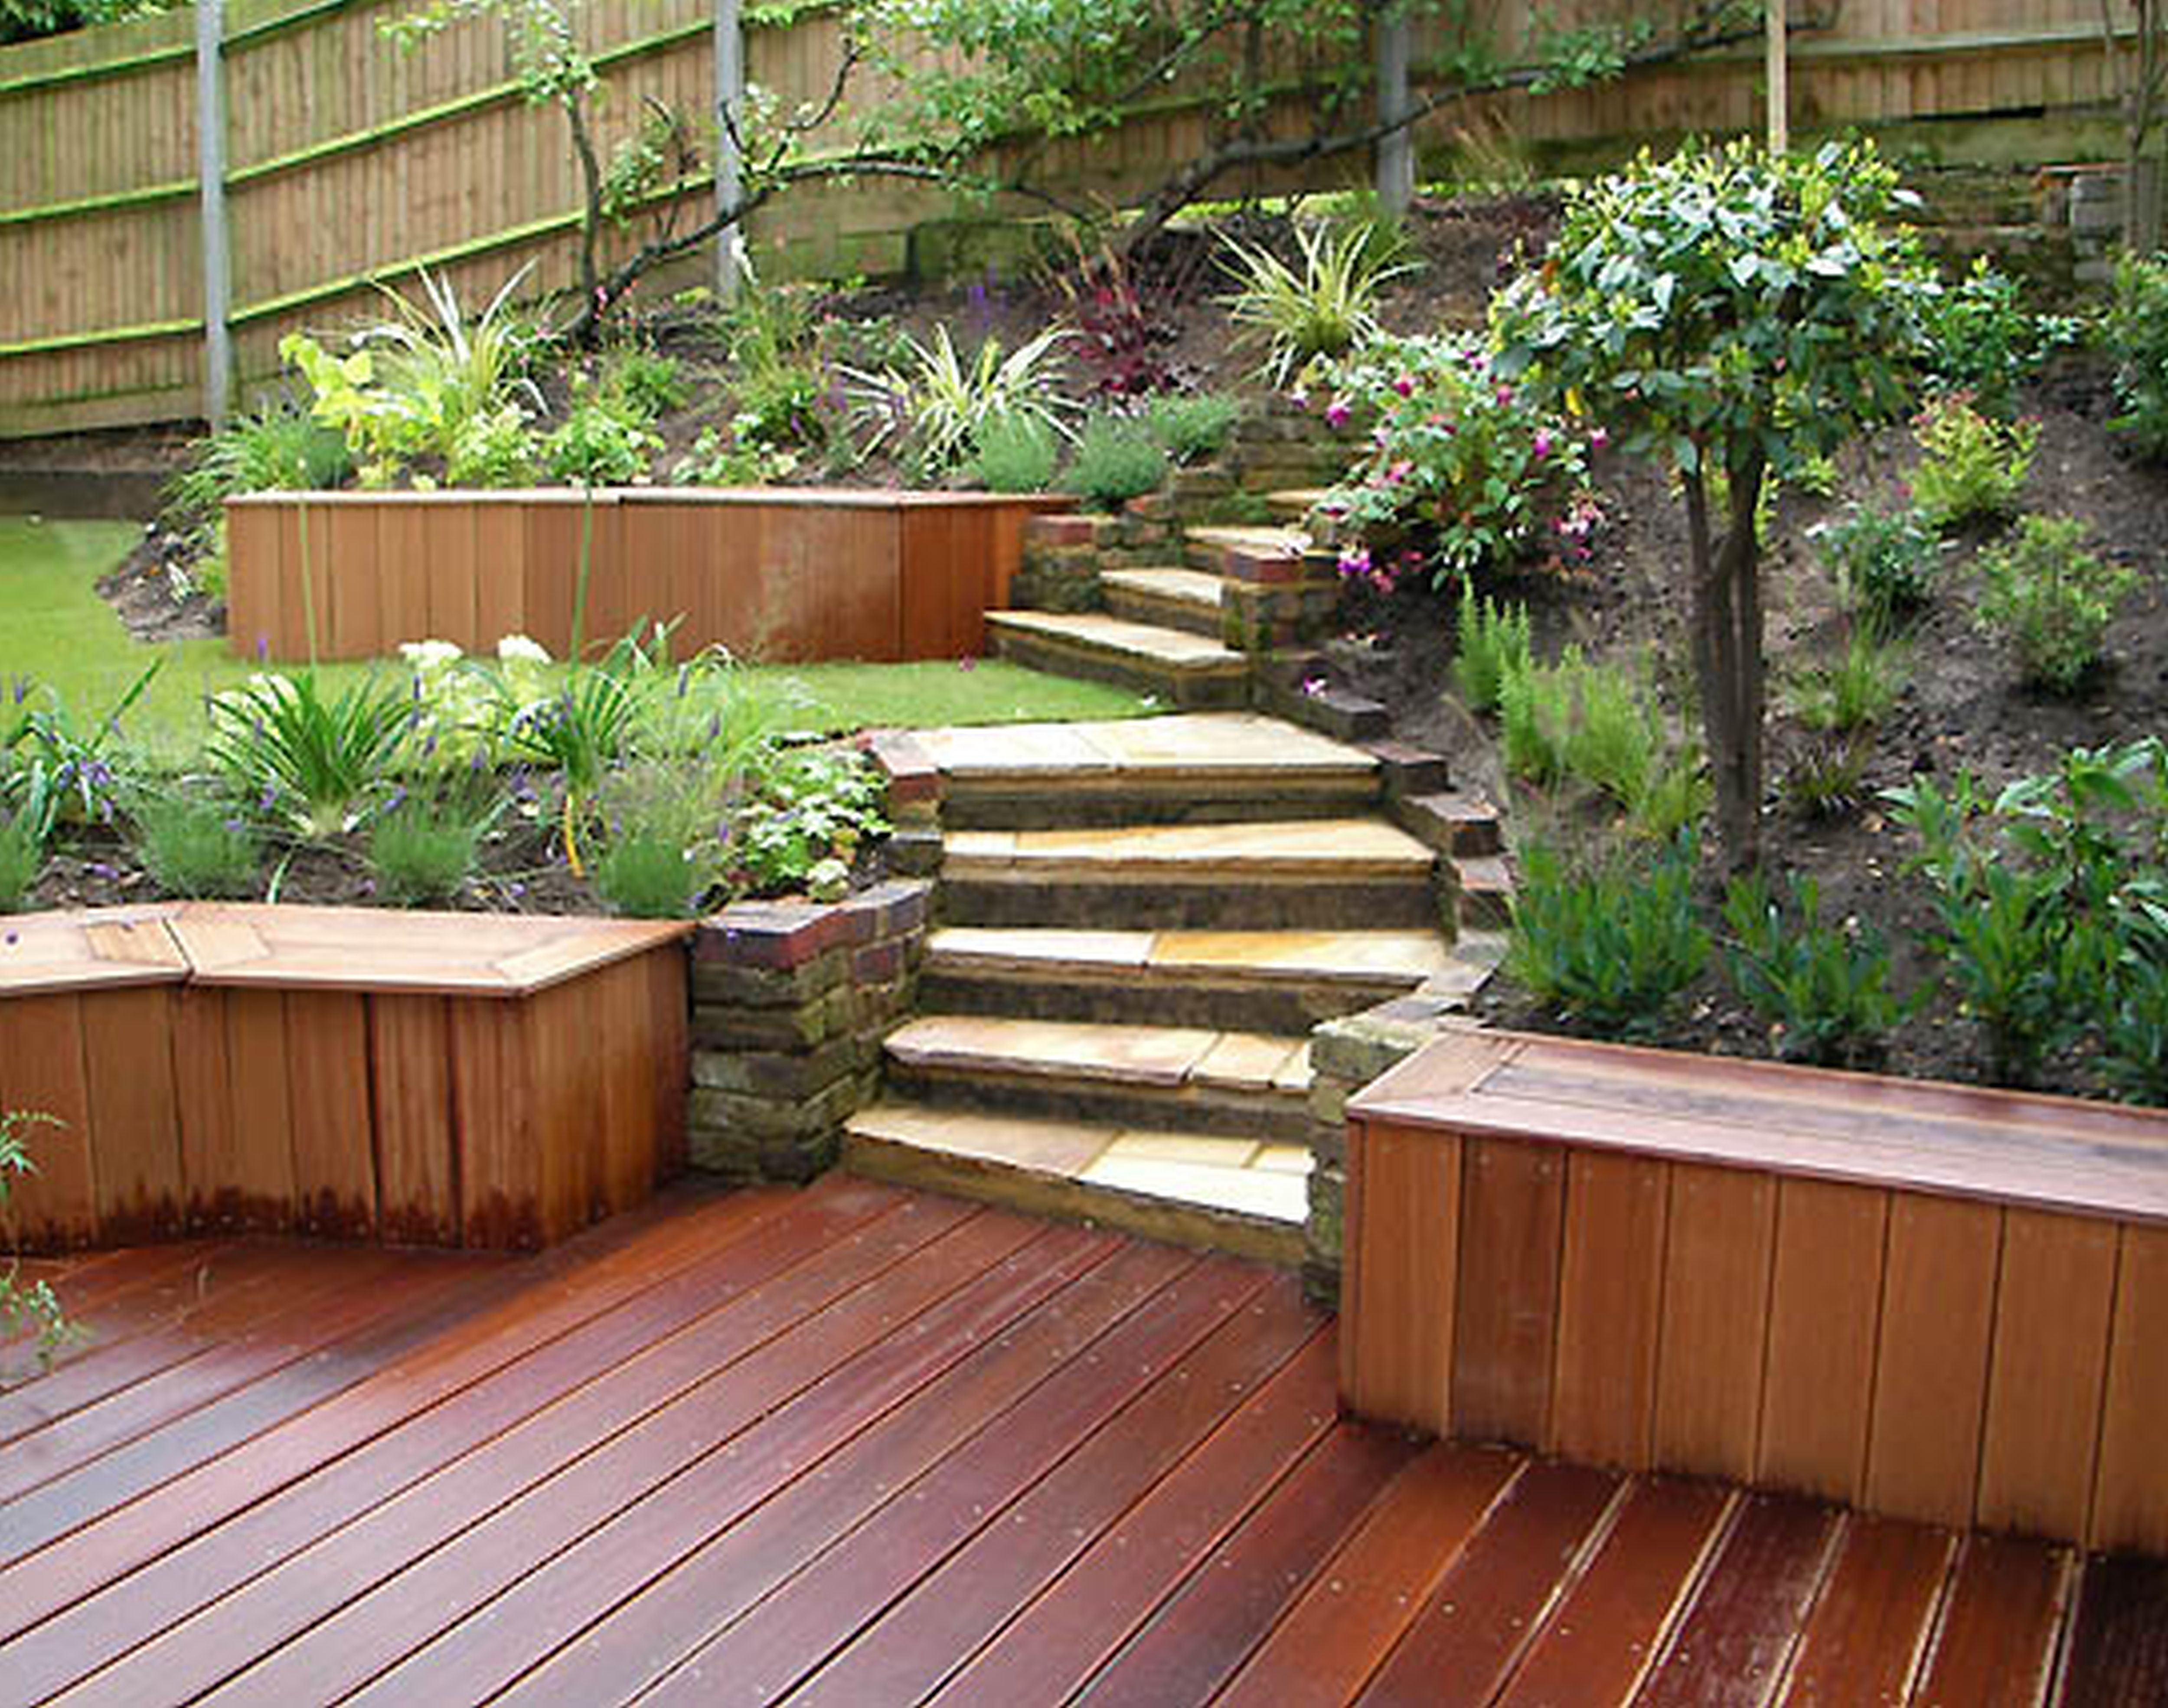 Combine Wavy Stone Stairs and Wooden Deck in Contemporary Flower Garden Ideas with Long Oak Benches